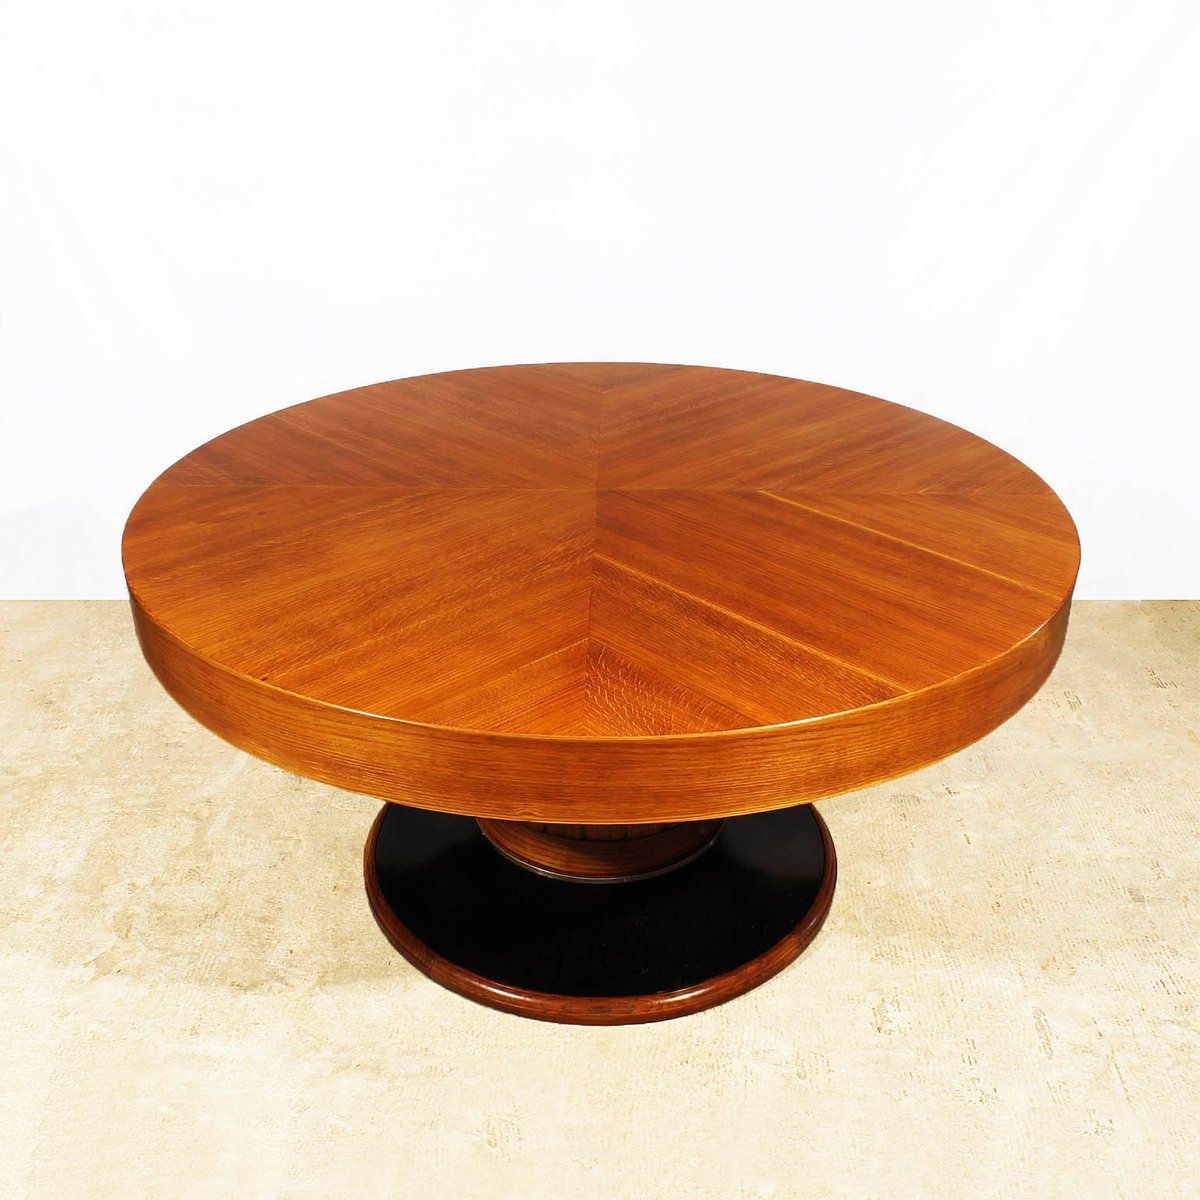 Large round spanish art deco table 1930s for sale at pamono for Miroir art deco 1930